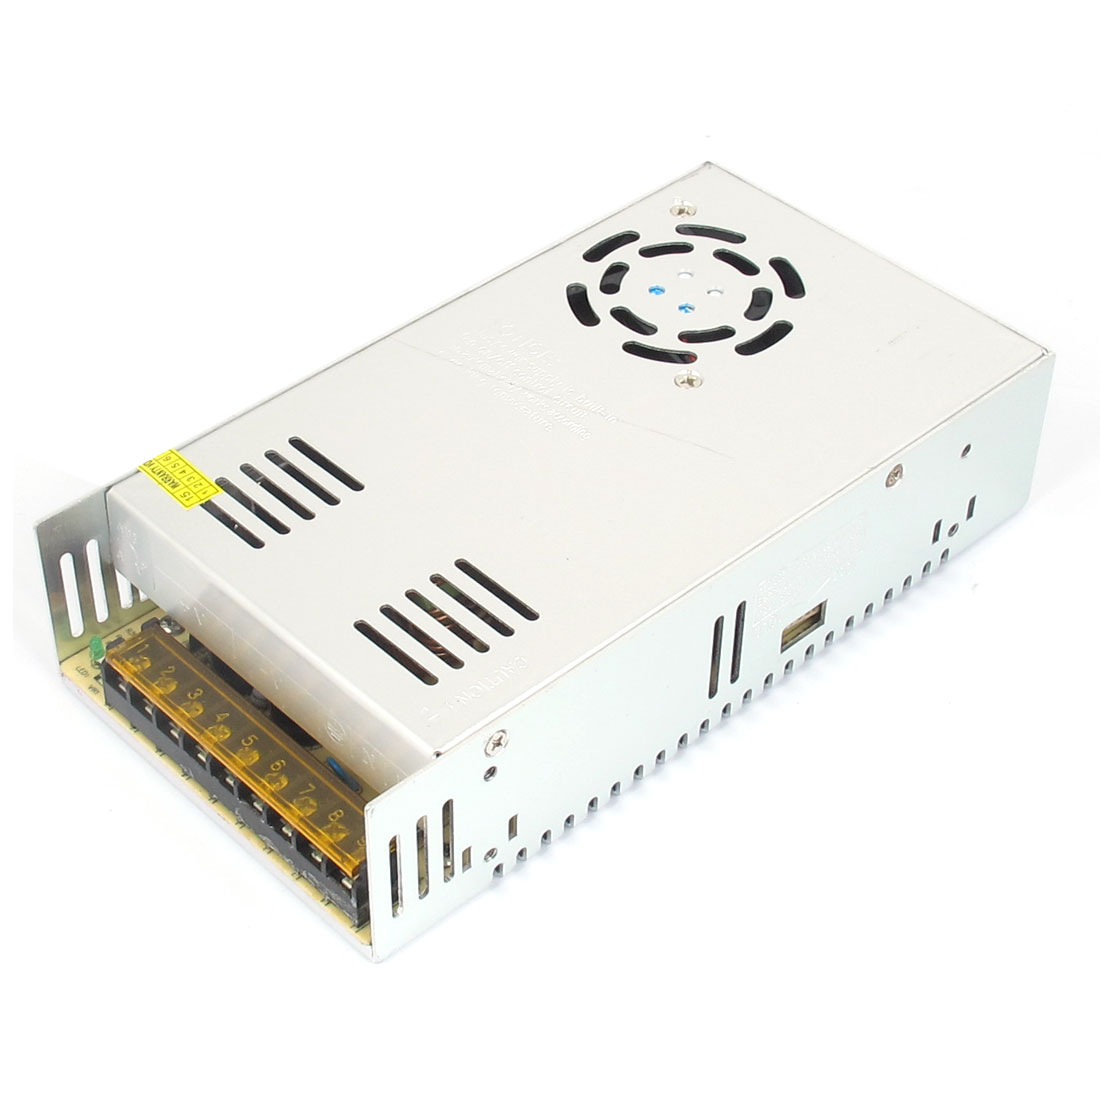 DC 12V 30A 360W 9 Terminal Switching Power Supply Converter for LED Strip Light